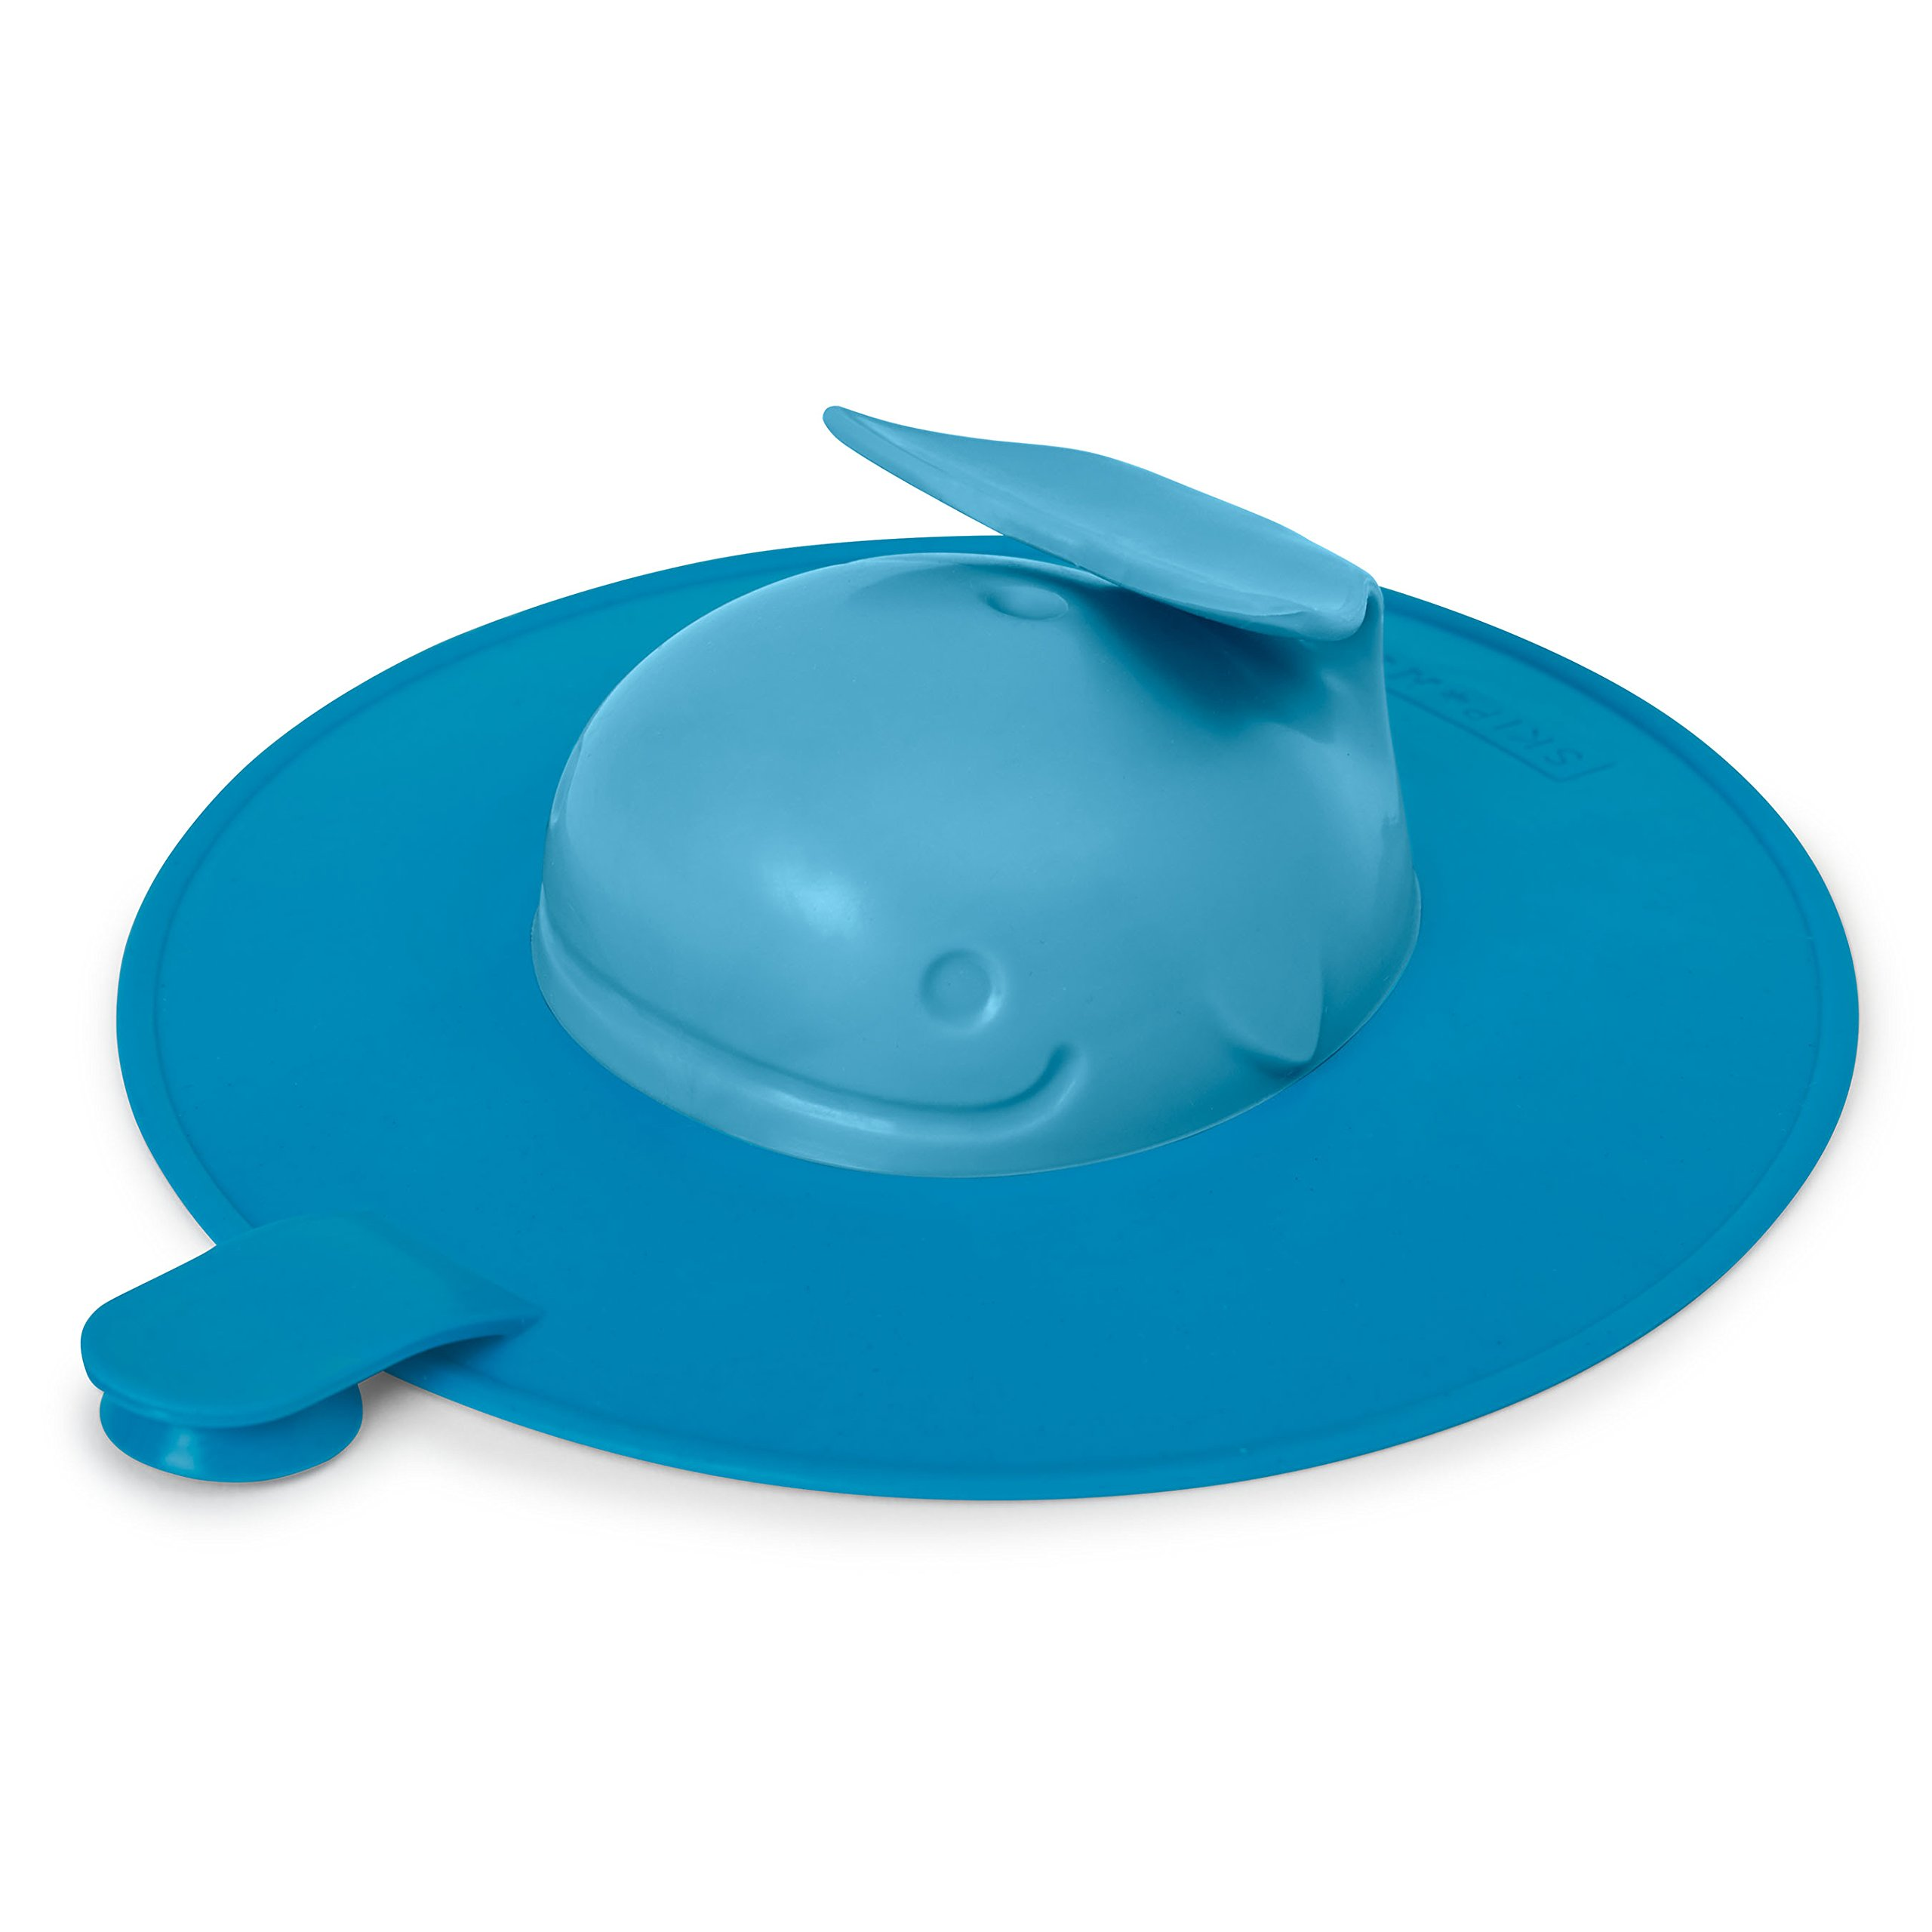 Moby Baby Bath Tub Stopper, Blue